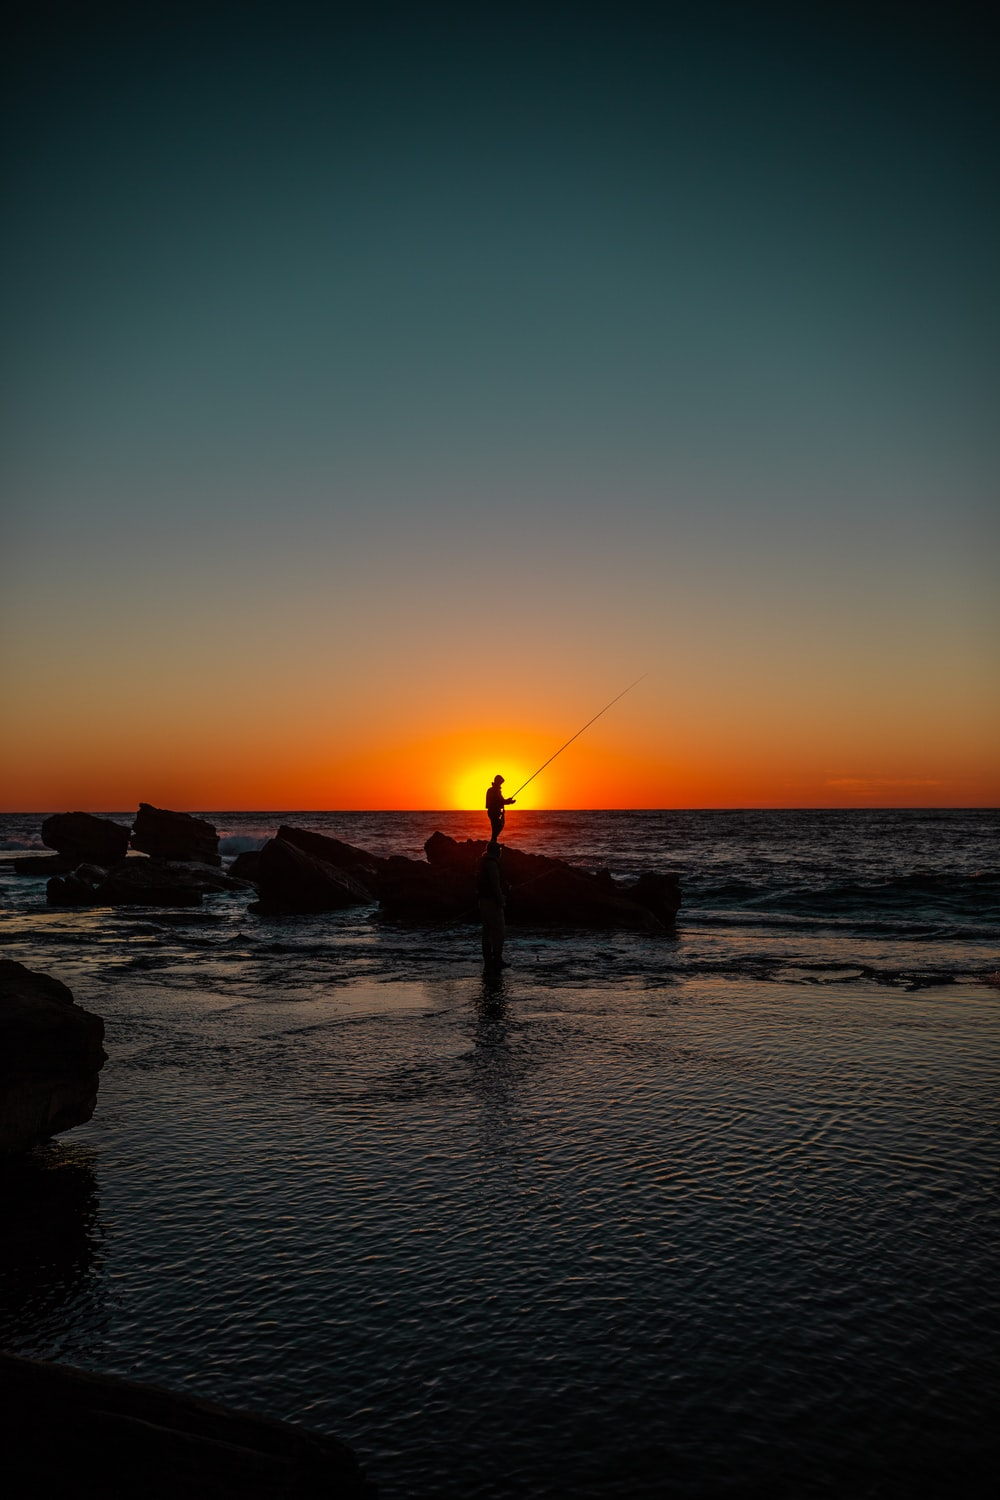 silhouette of man holding fishing rod